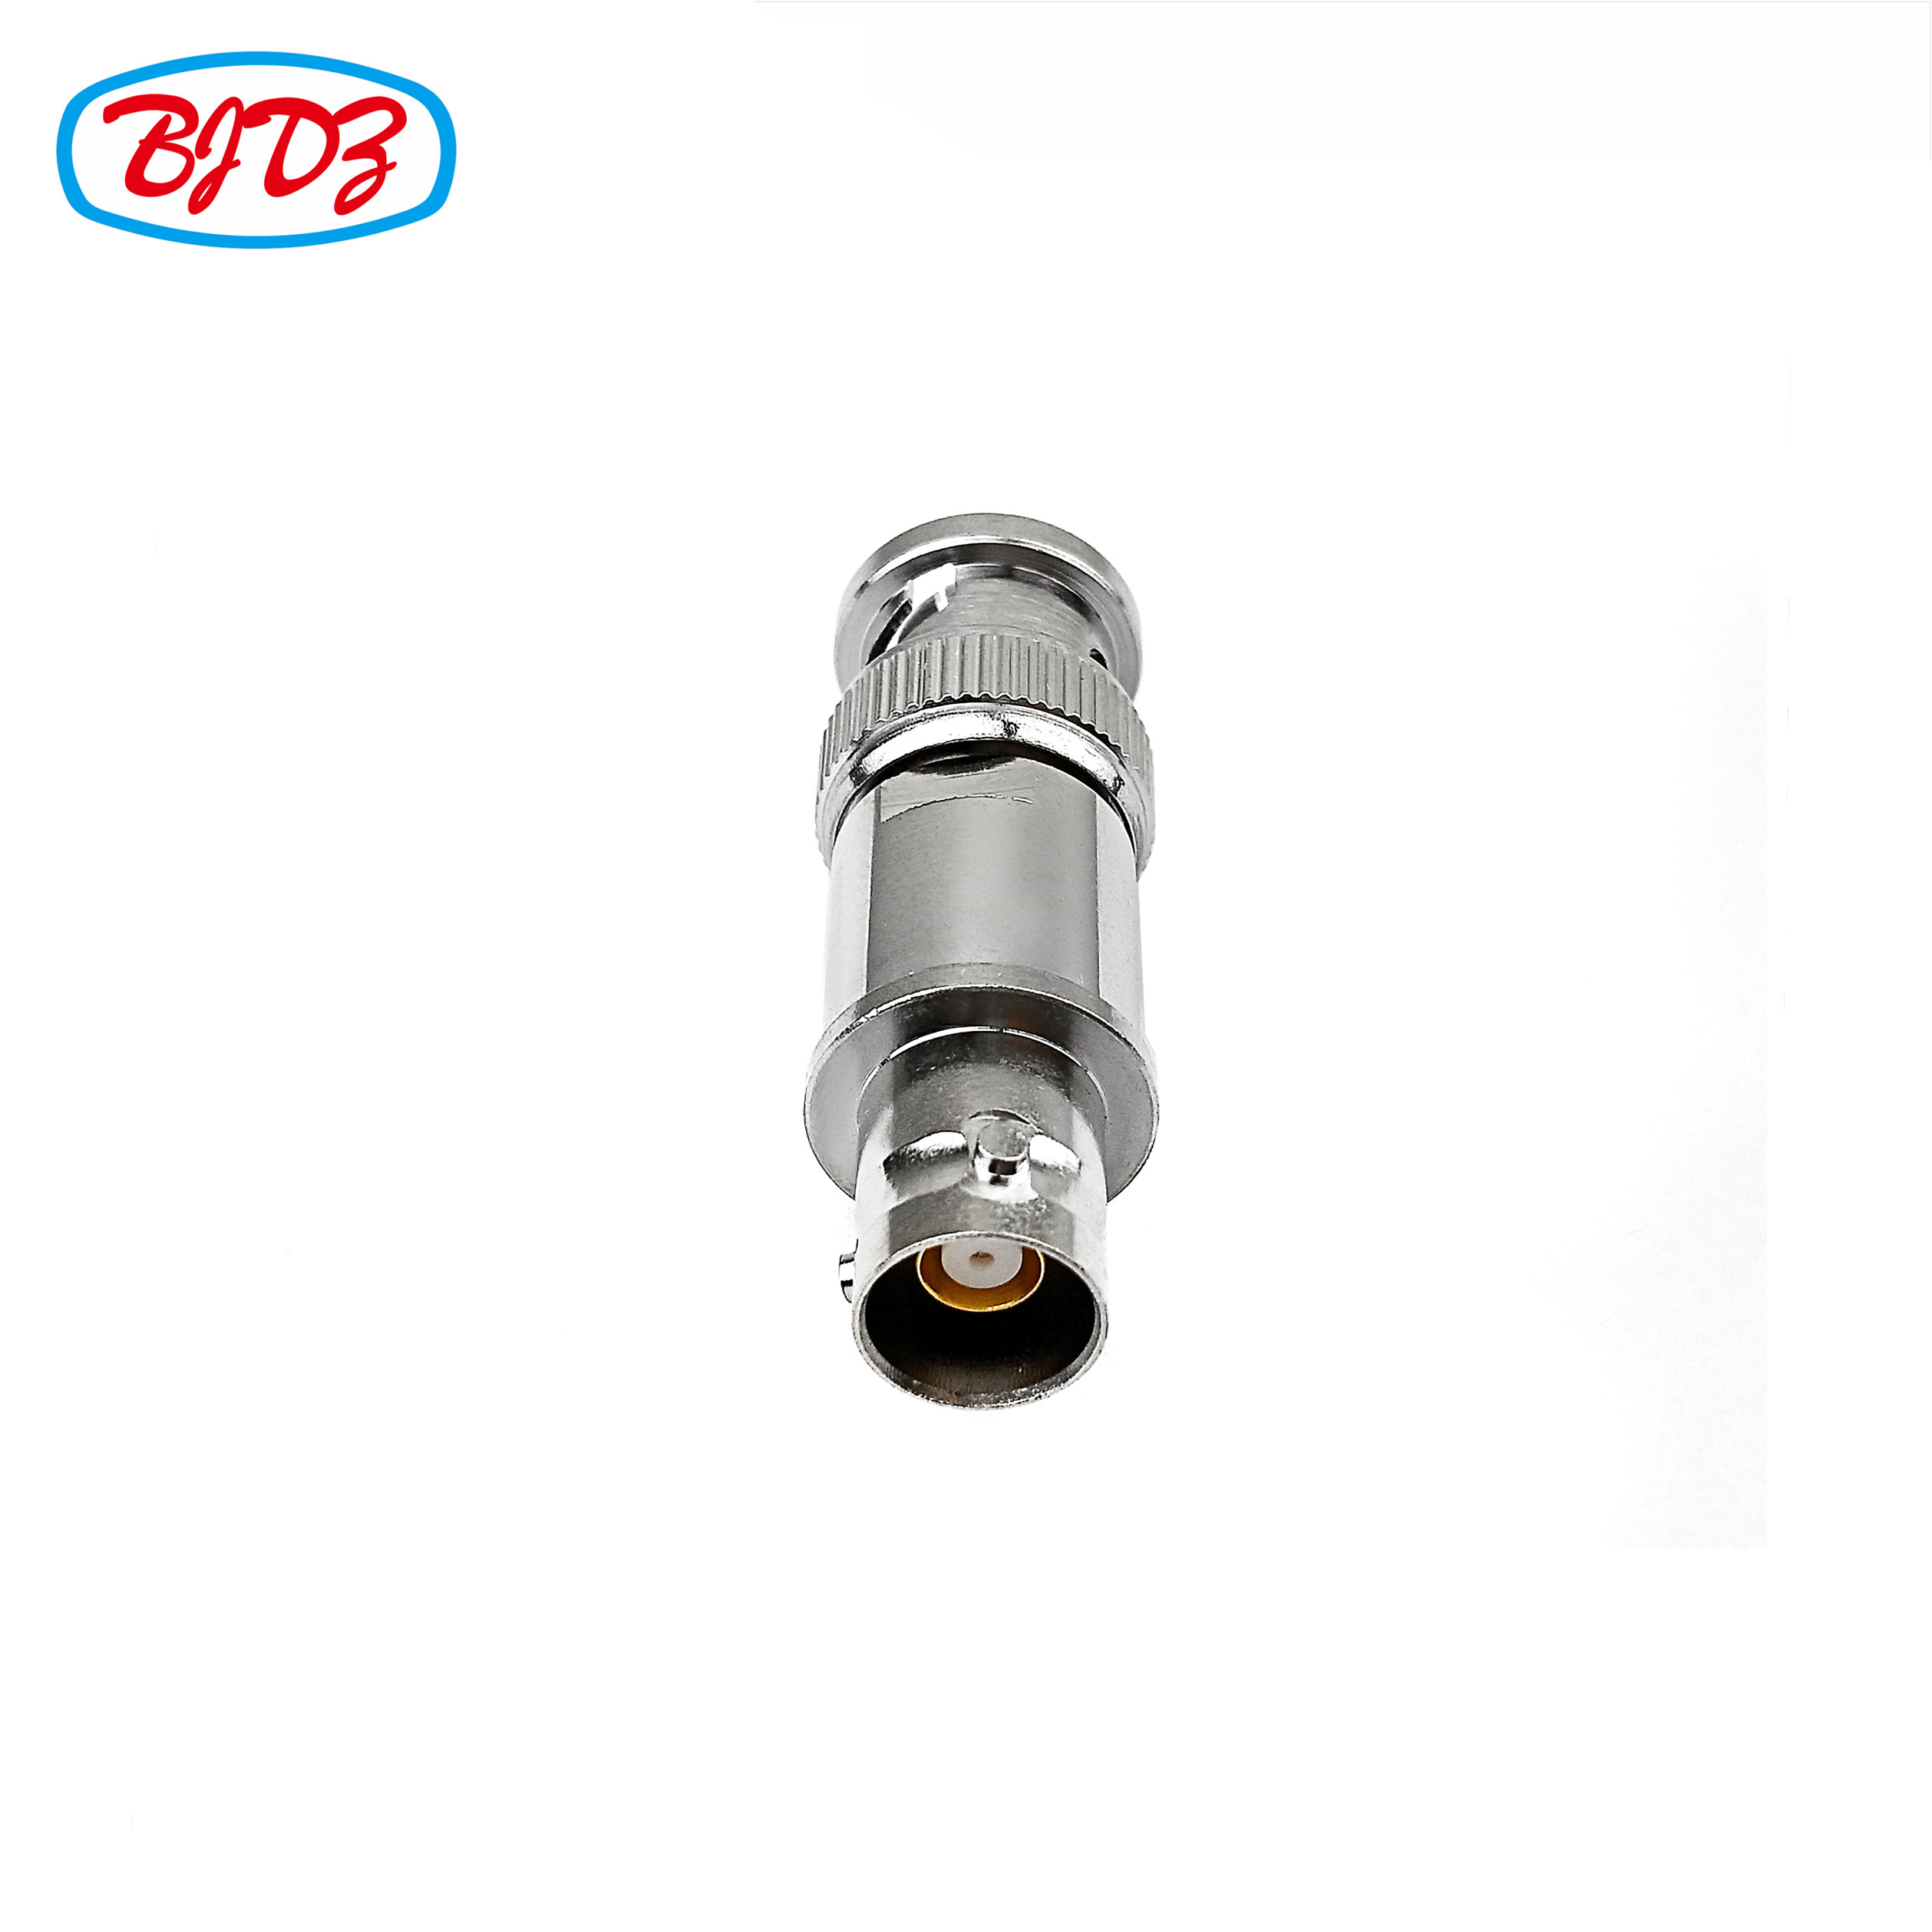 Cable electrical connector 1553B bus connector Coaxial BNC male to female Triaxial bnc 3 pin wire connector adapter price